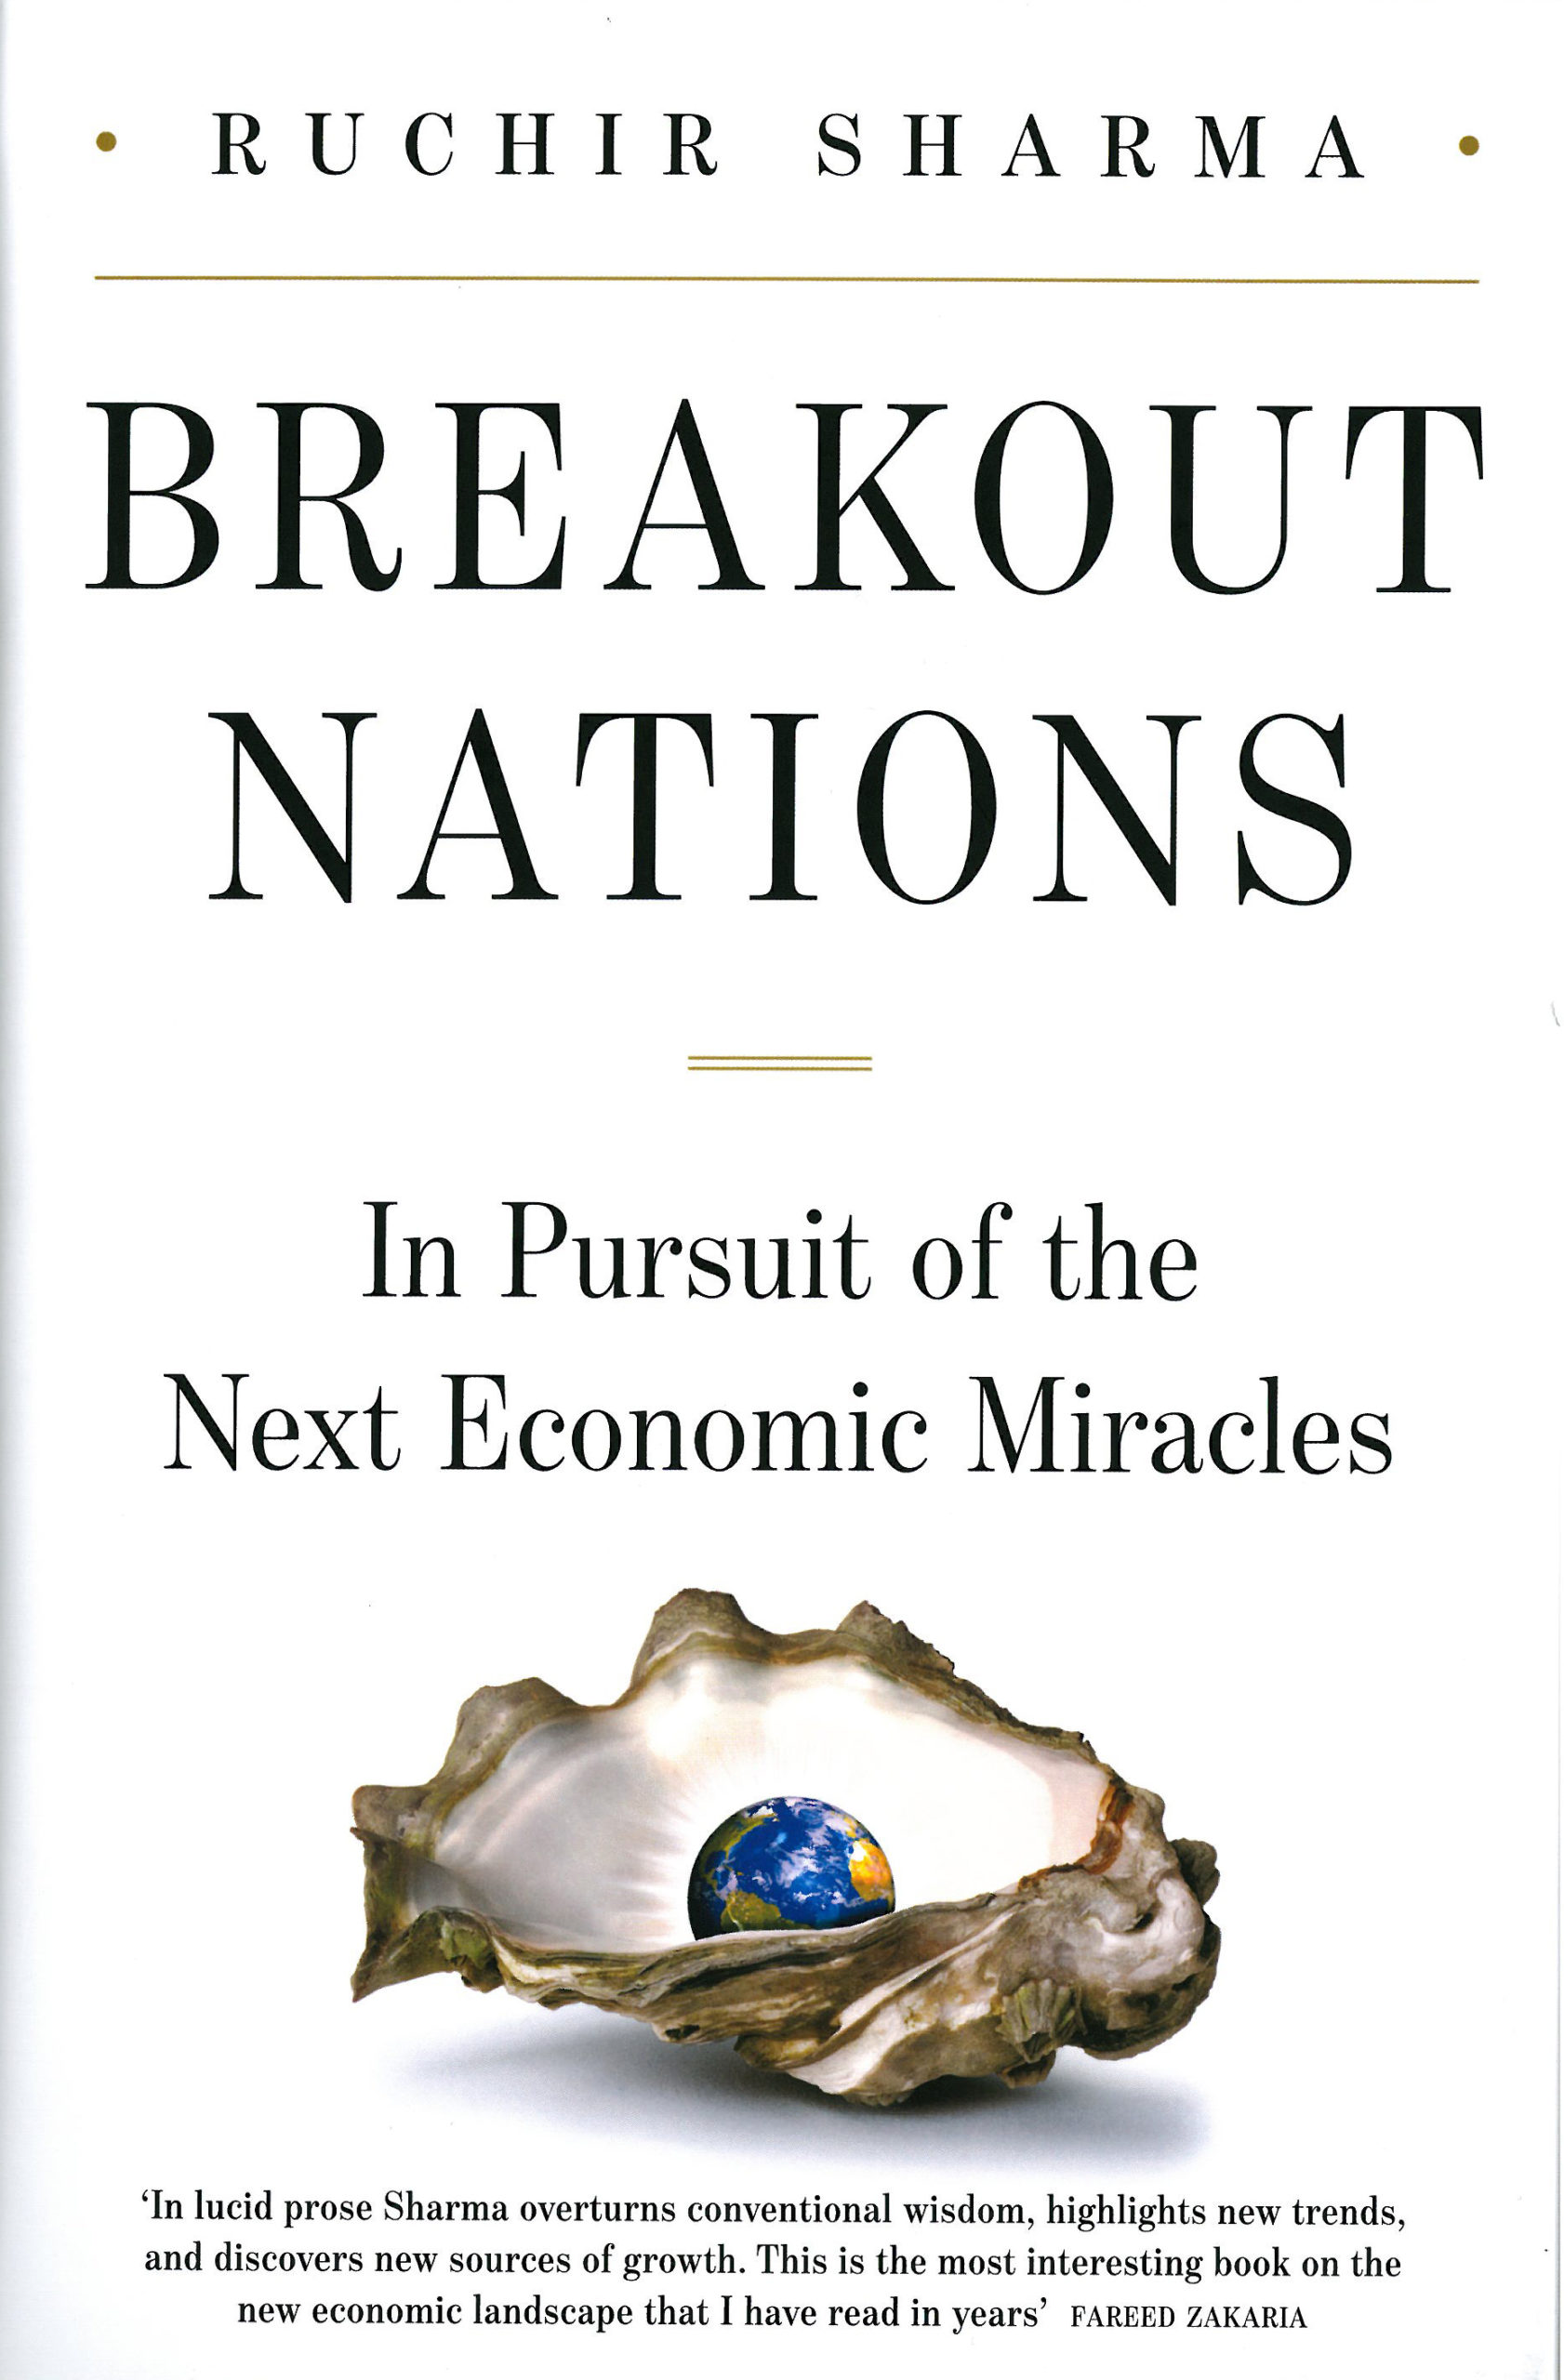 Ruchir Sharma: Breakout Nations. In Pursuit of the Next Economic Miracles. W.W. Norton & Company 2012, 304 s.